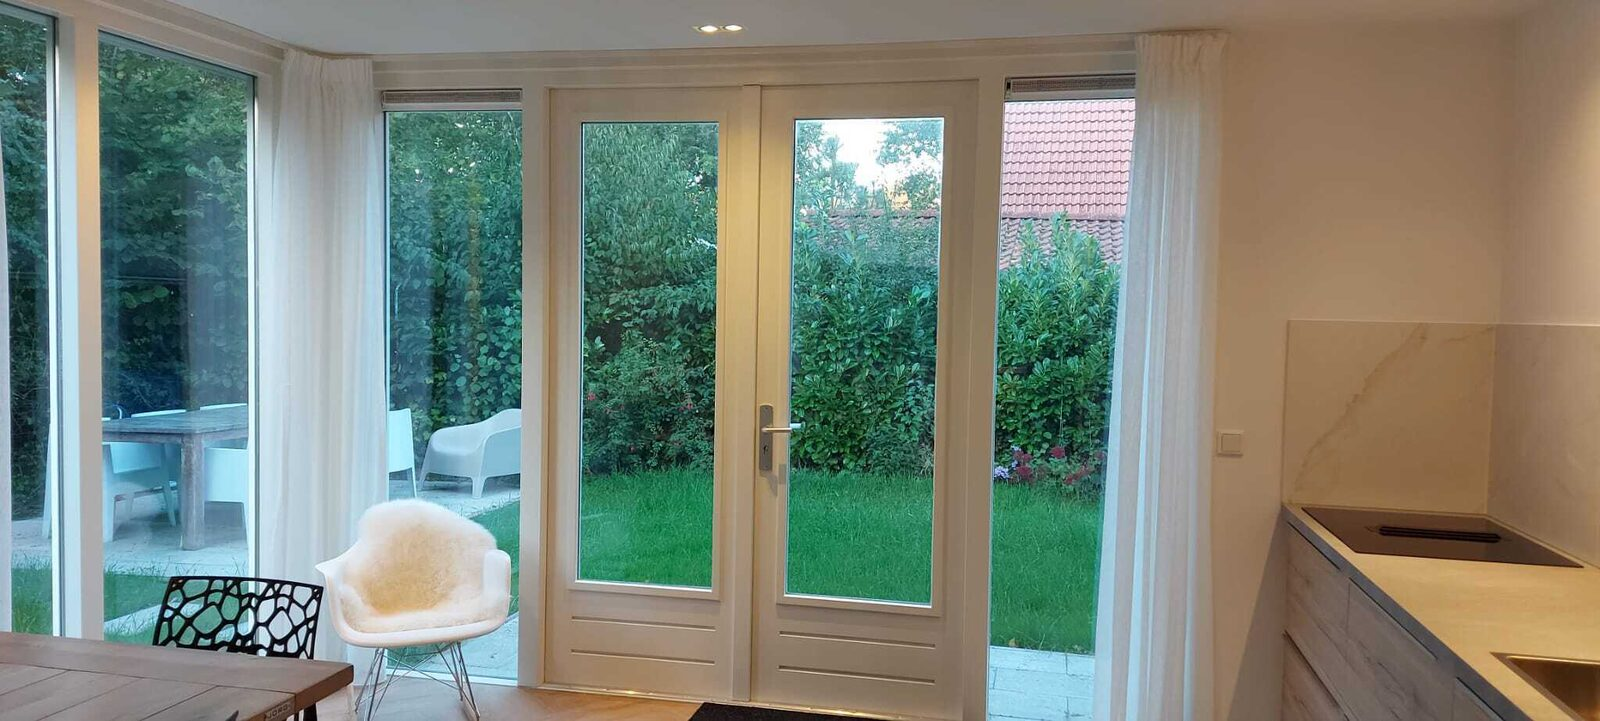 Holidayhome - Oosterpark 76 | Oostkapelle